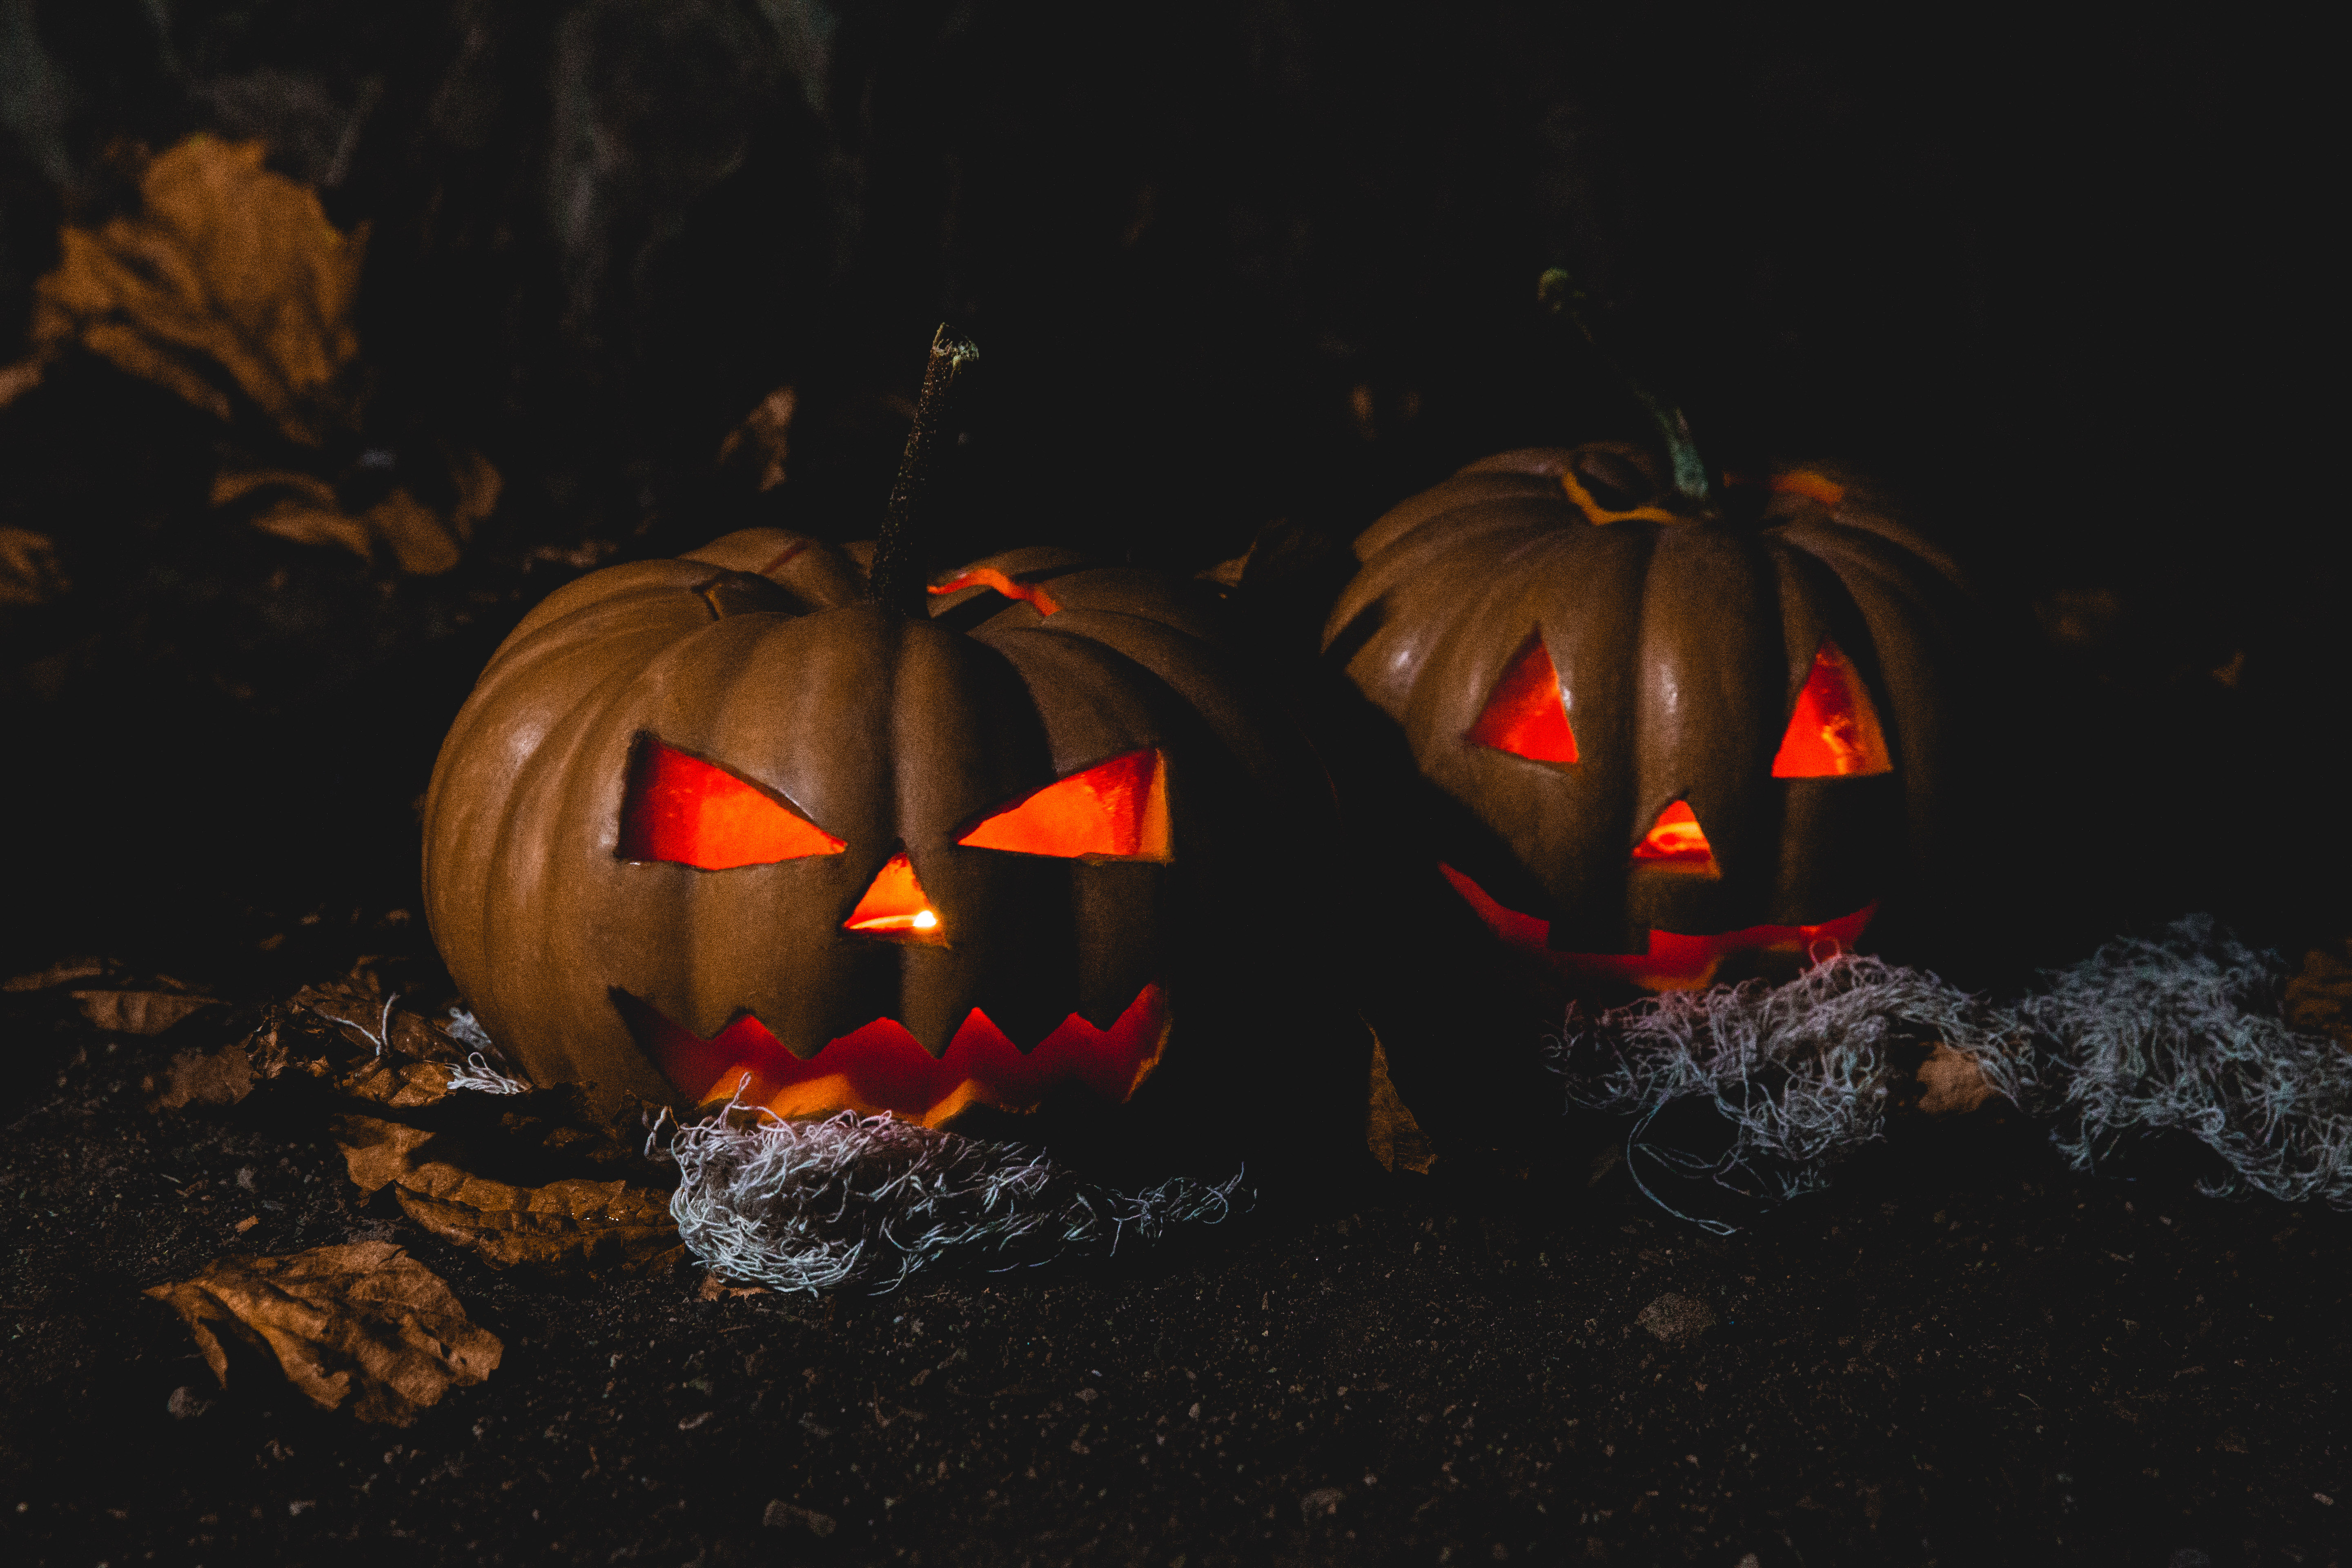 78096 download wallpaper Halloween, Holidays, Pumpkin, Dark screensavers and pictures for free